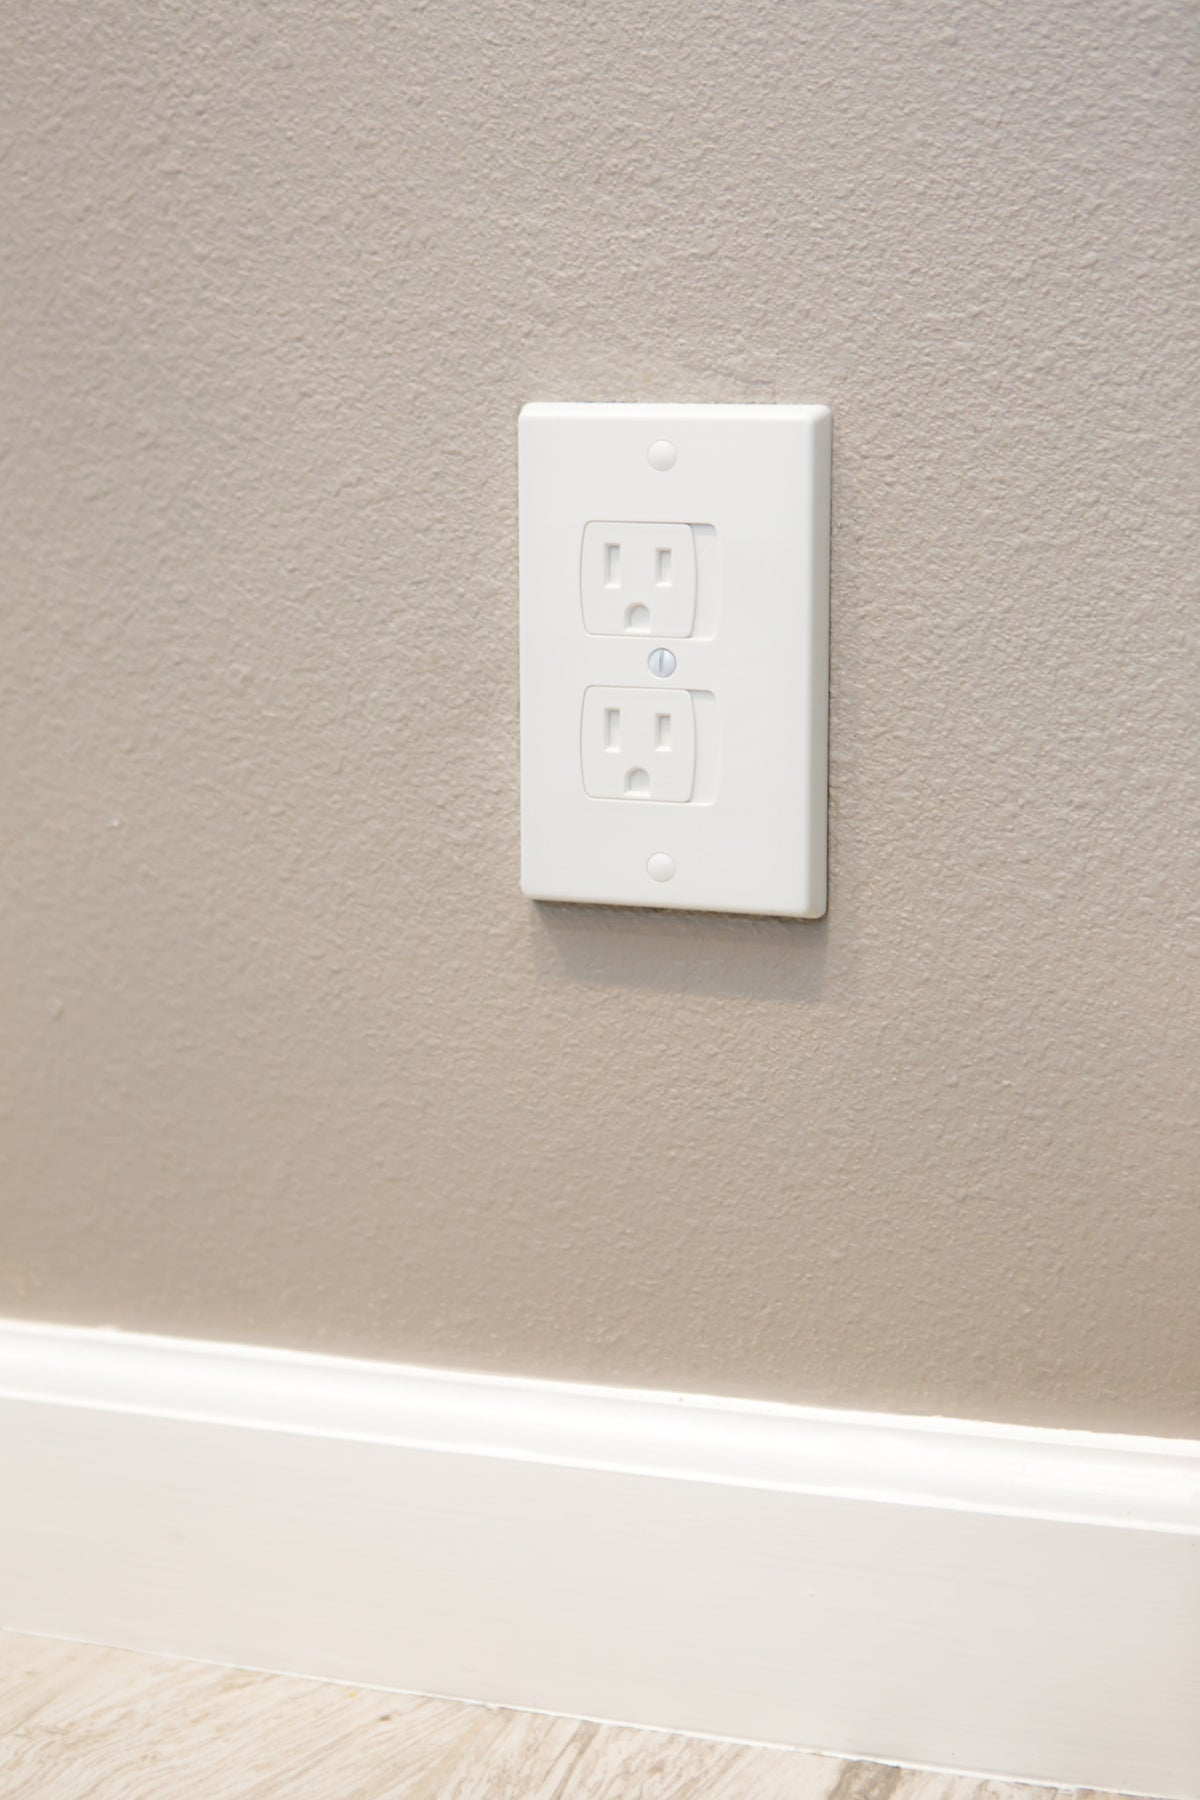 Self Closing Electrical Outlet Covers 4 Pack White Jessa Leona Baby